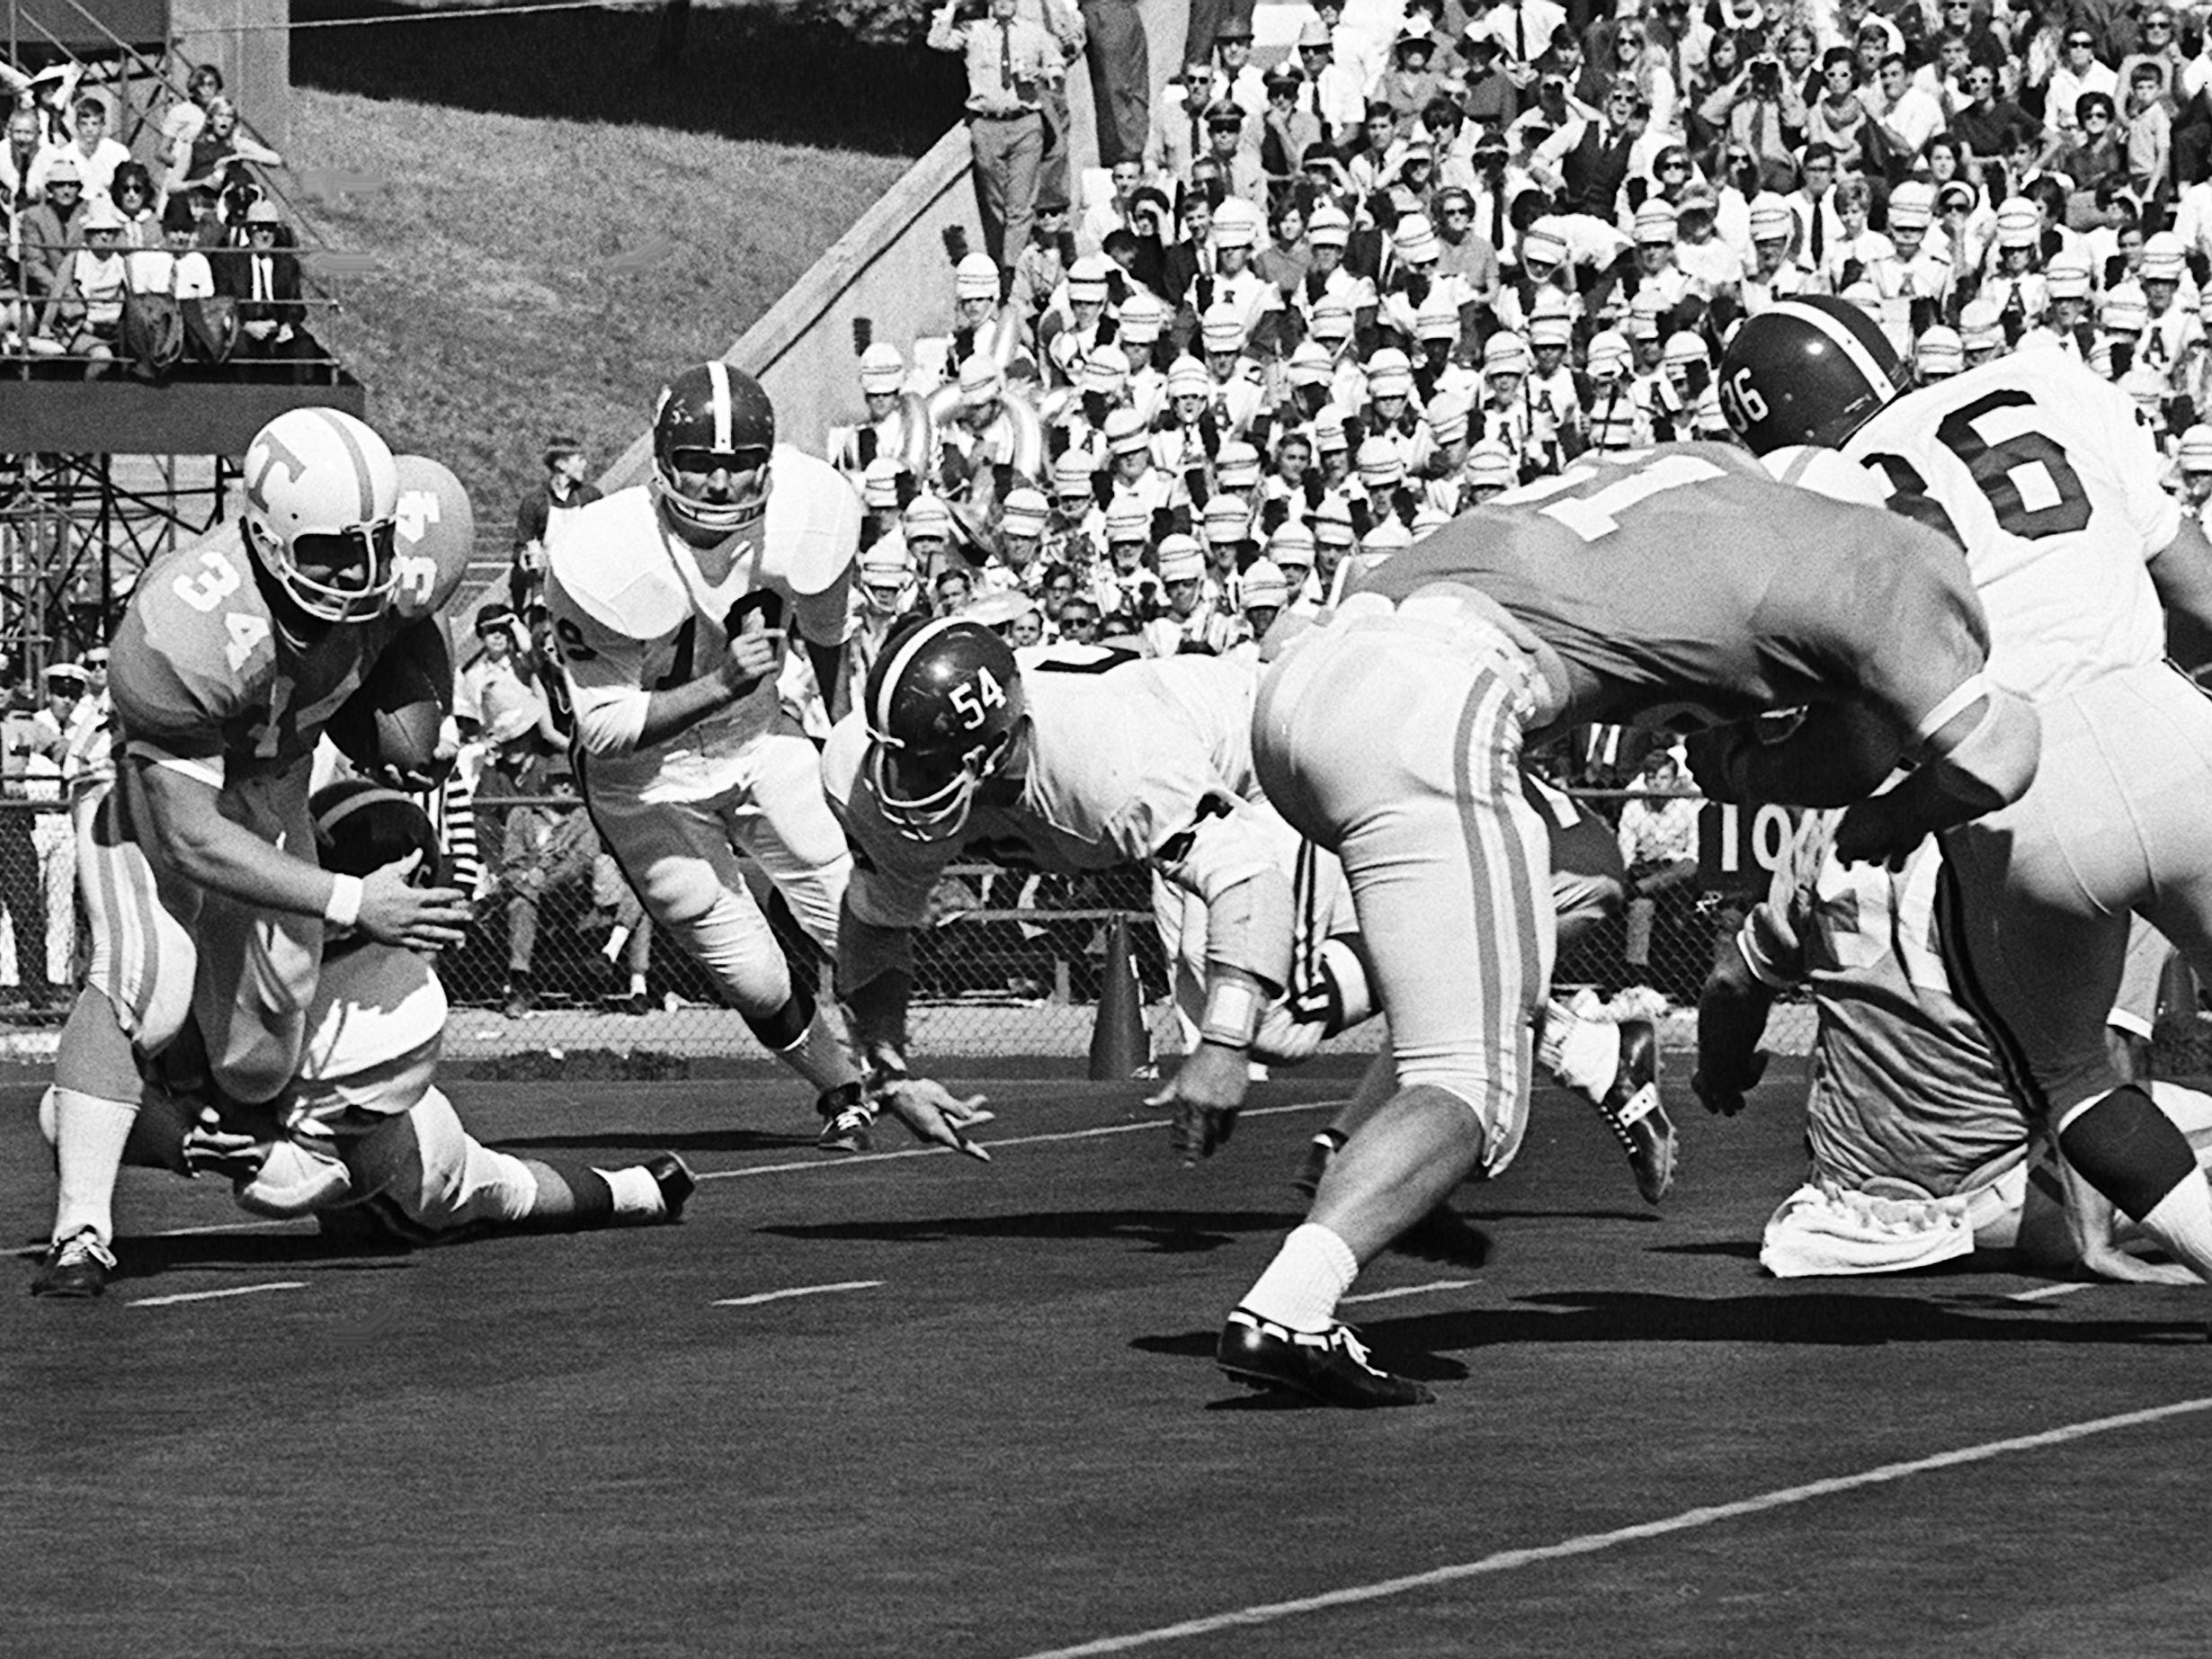 Tennessee senior fullback Richard Pickens (34) attempts to break the hold of one defender as other Alabama players close in on him at Neyland Stadium Oct. 19, 1968.